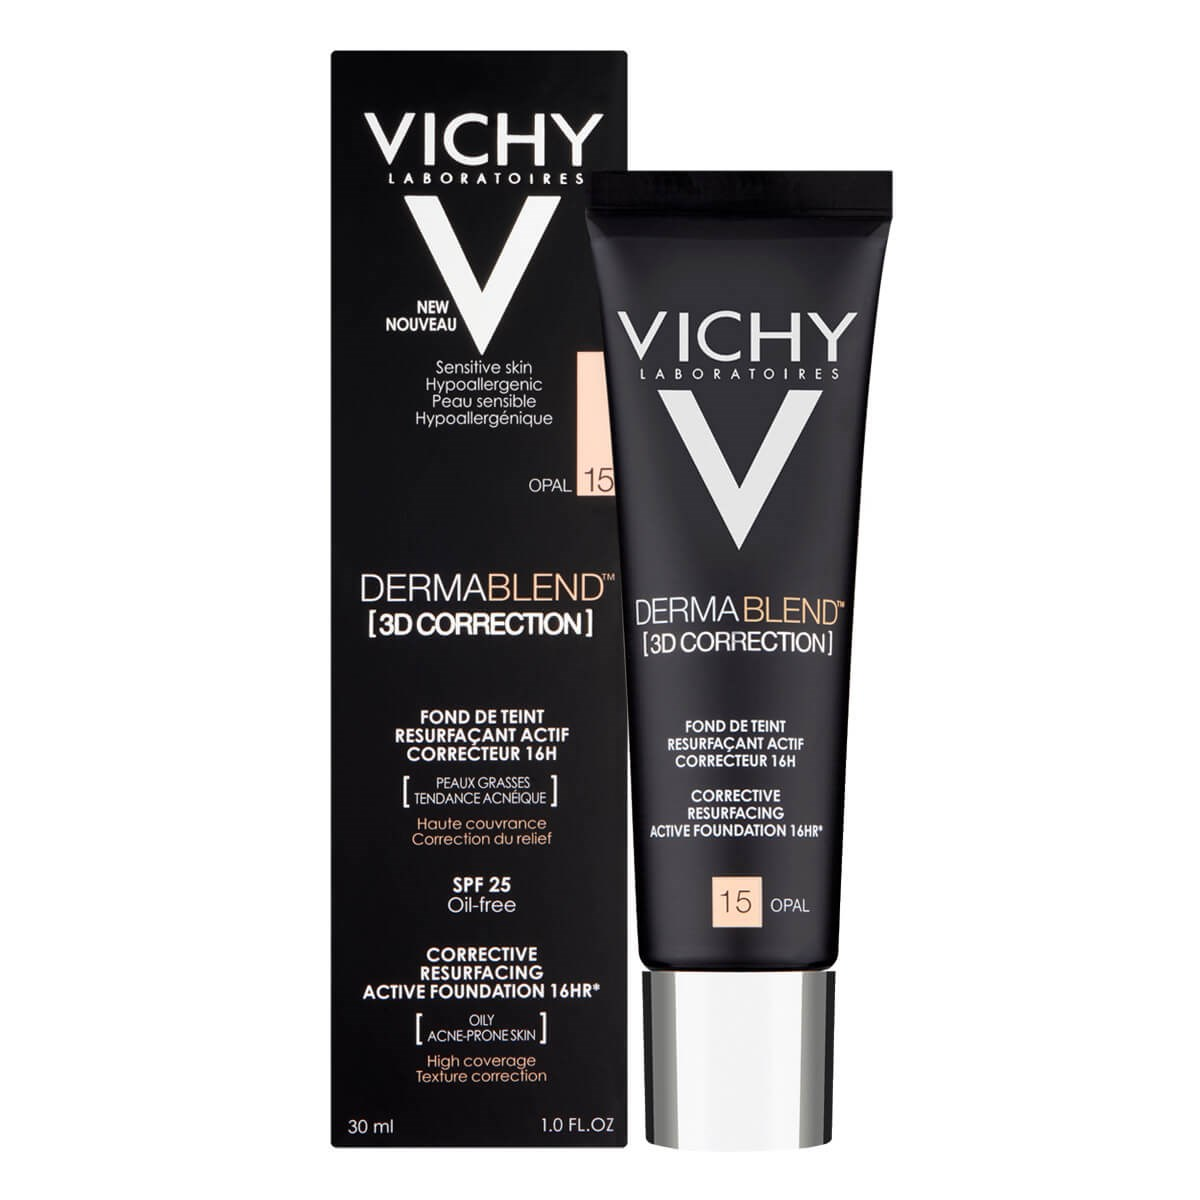 Vichy Dermablend 3D Correction Foundation